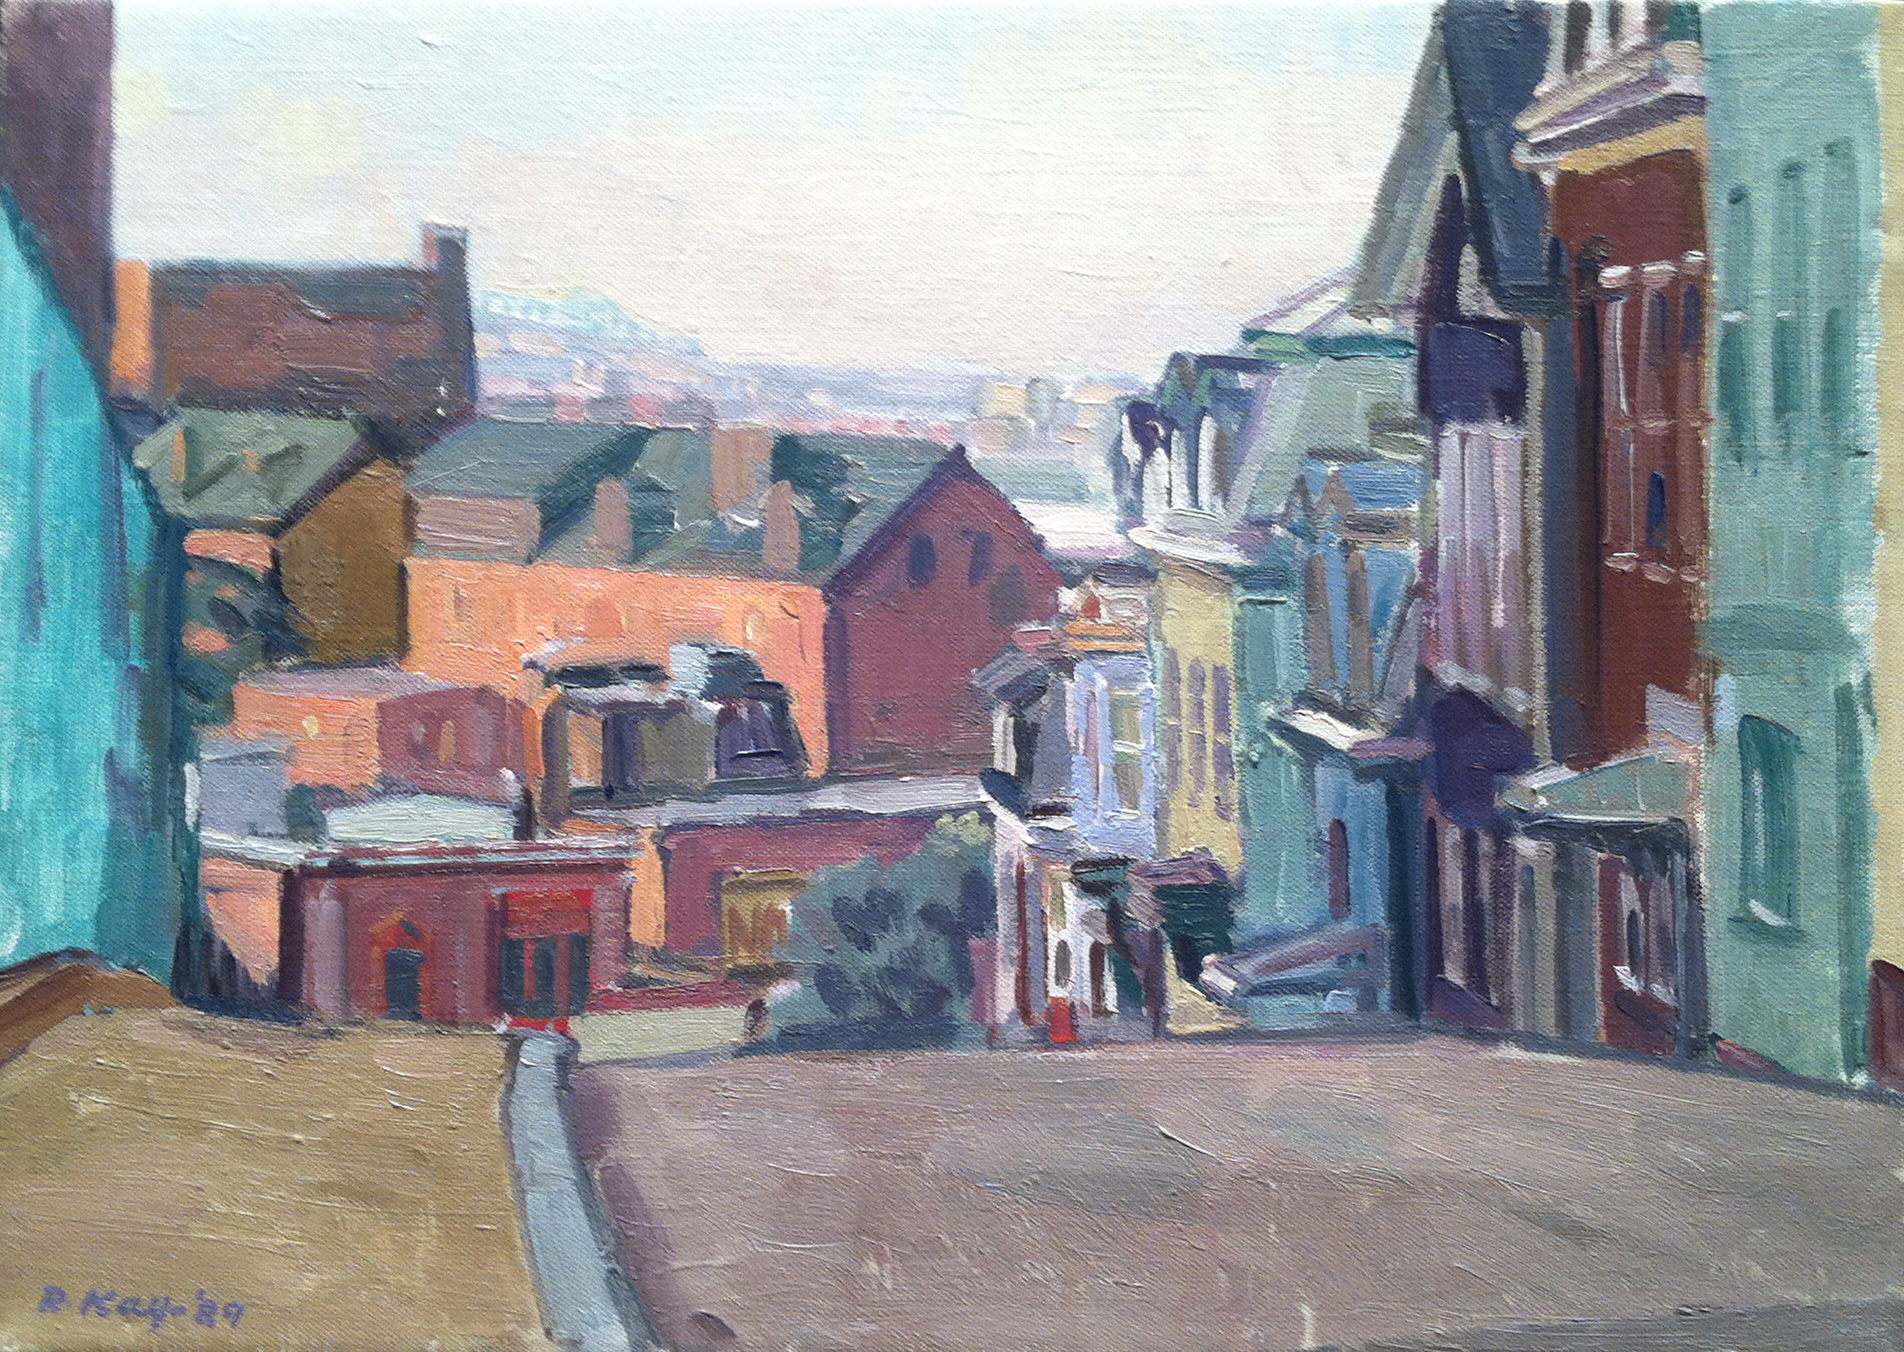 View From the Hill,  1989 oil on canvas, 10 x 14 inches